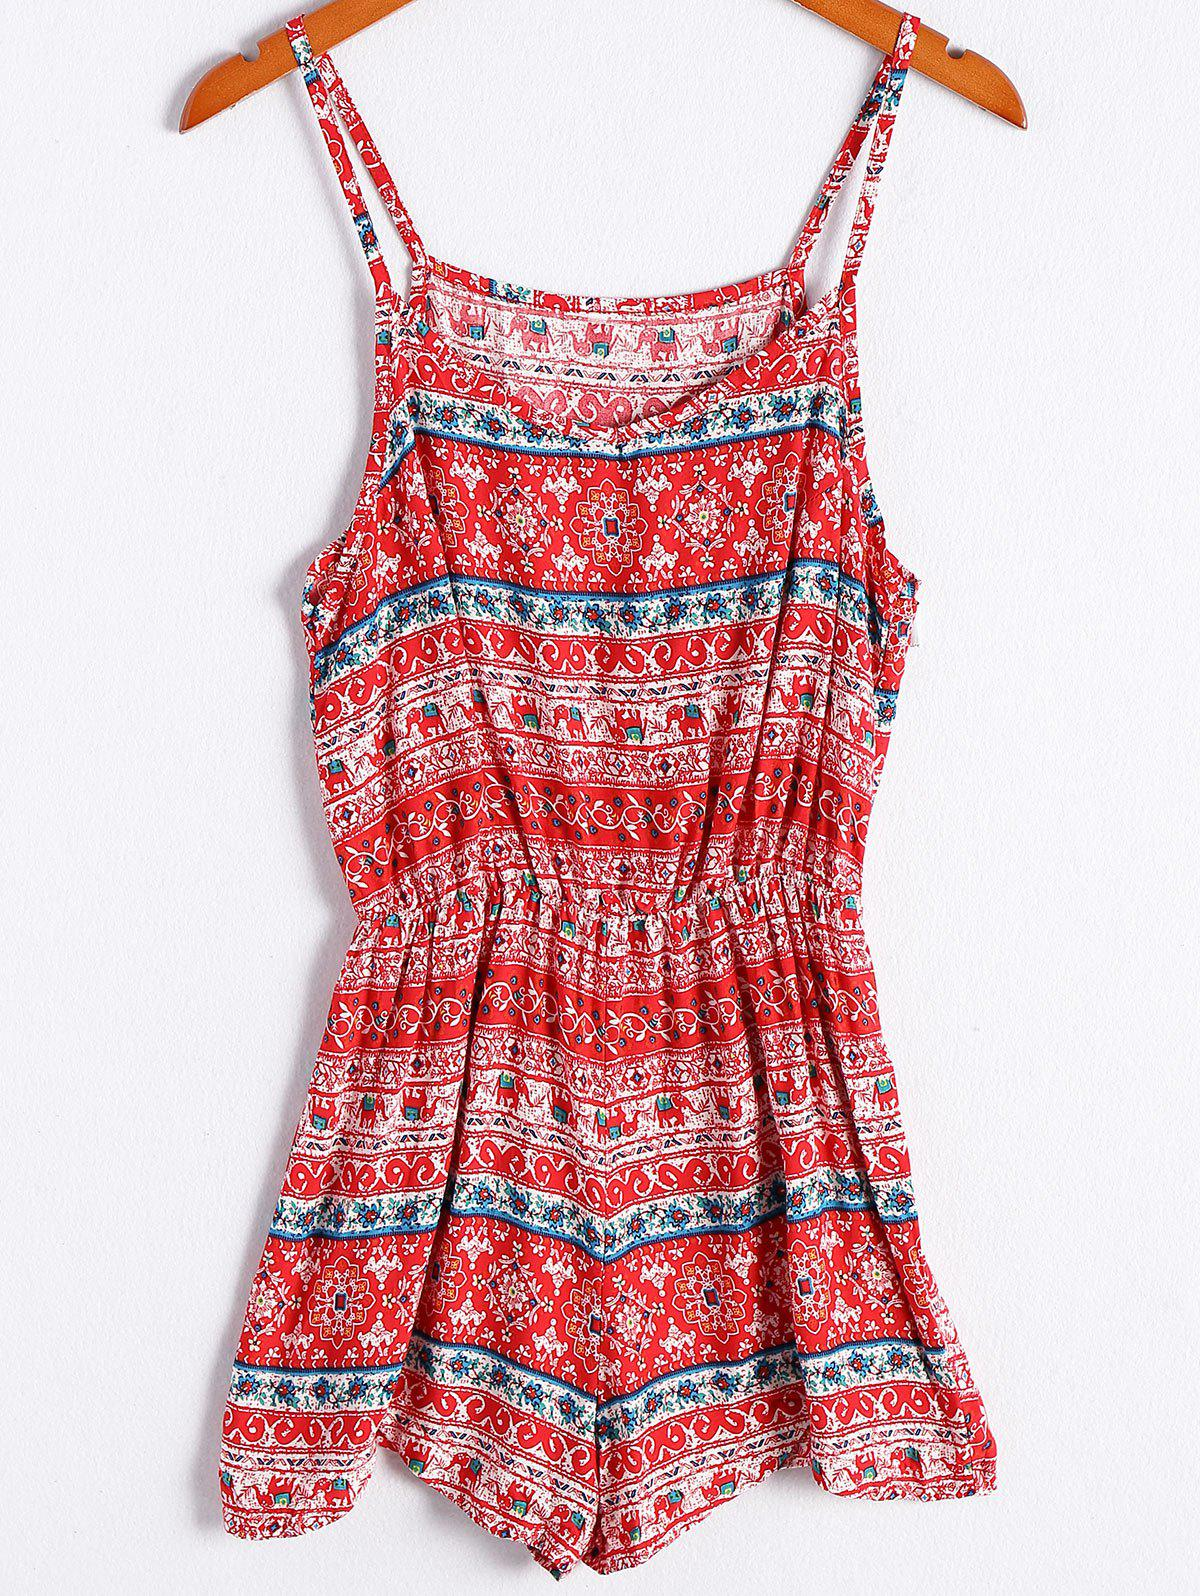 Ethnic Style Women's Spaghetti Strap Tribal Print Romper - RED XL